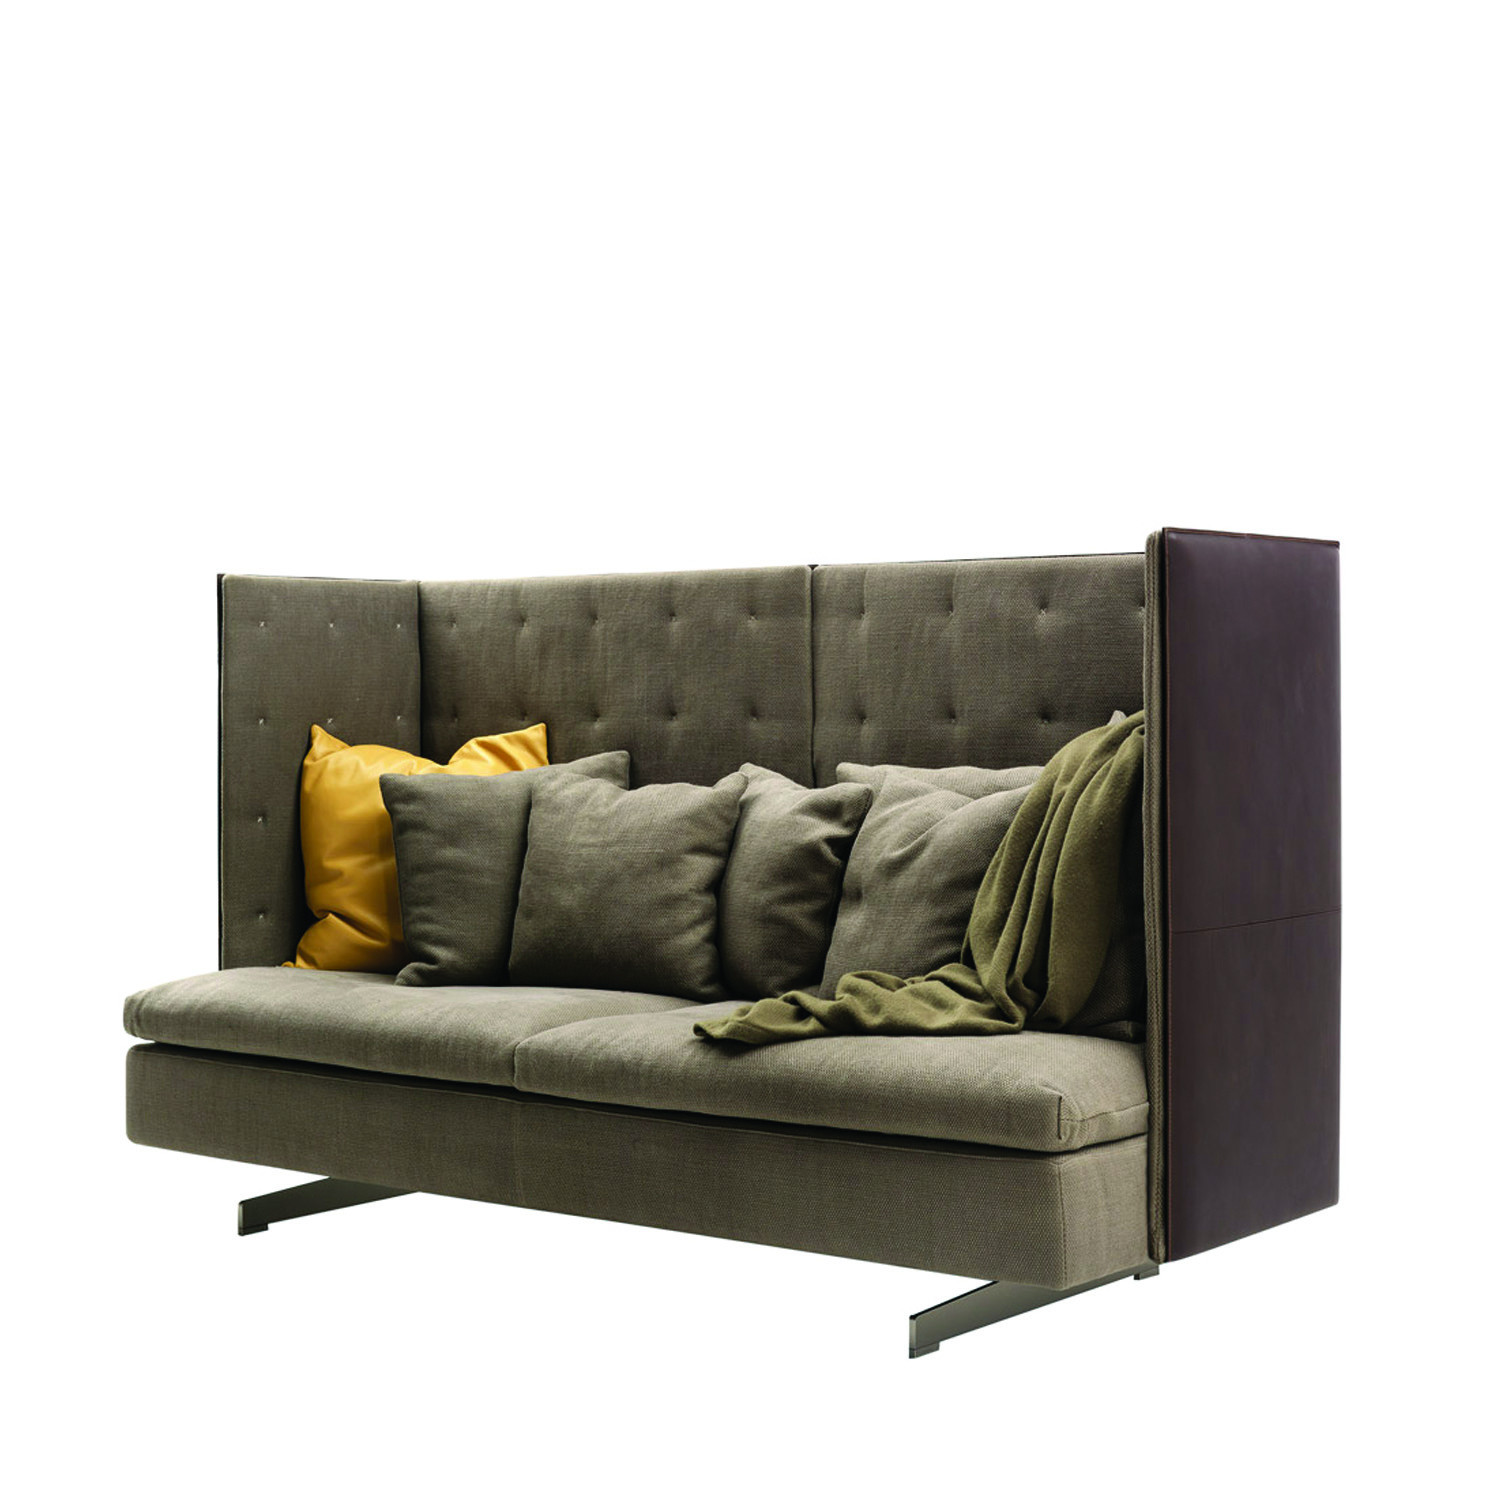 GranTorino HB Sofa Highback Privacy Sofas